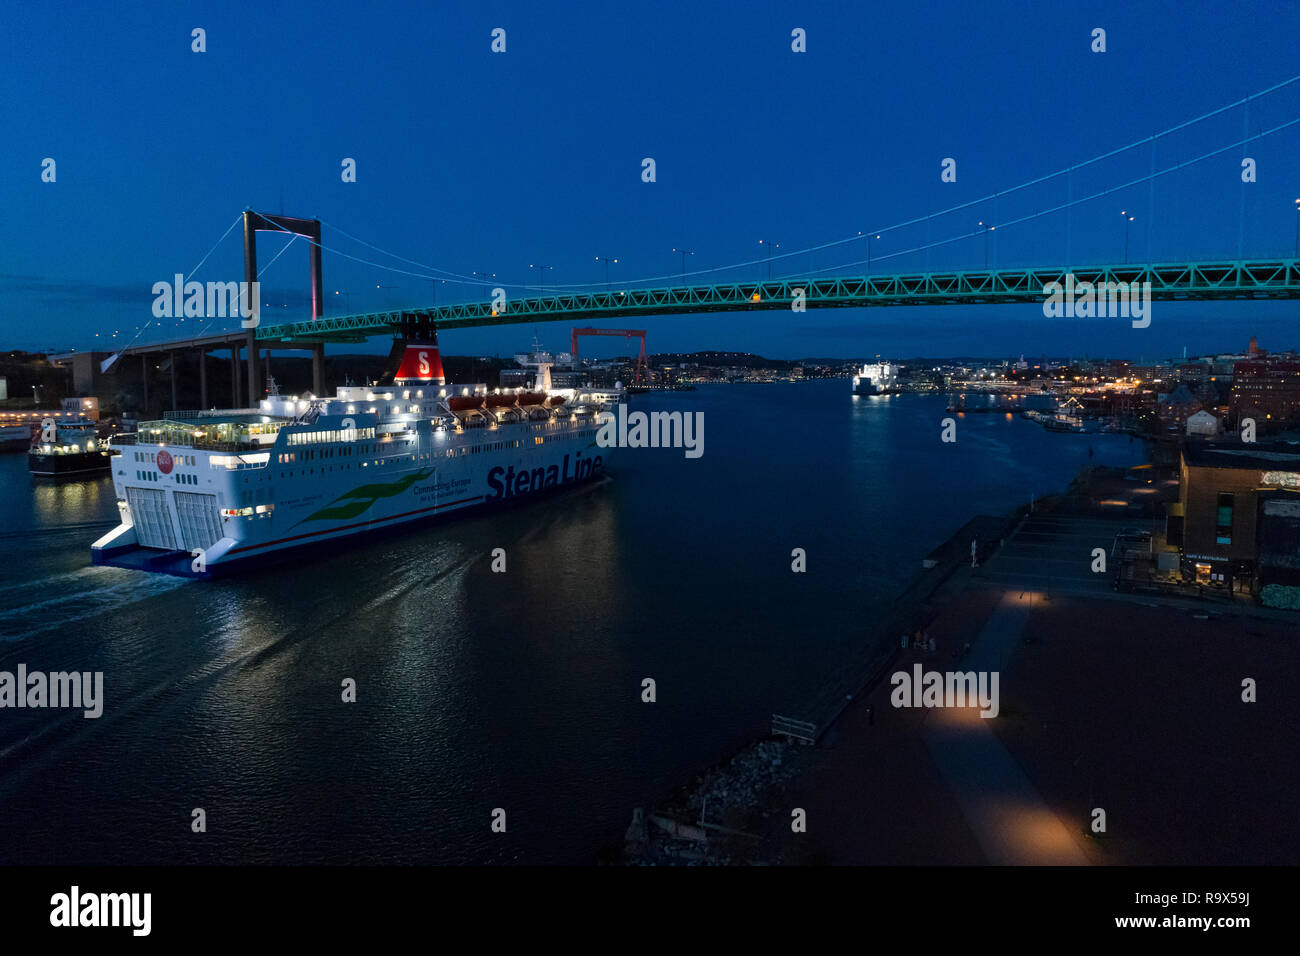 Stena Line Ferry, Gothenburg, Sweden. 2018-11-21, Nice blue dusk evening at autumn in the city.  Beautiful boat cruising at sea. Stock Photo